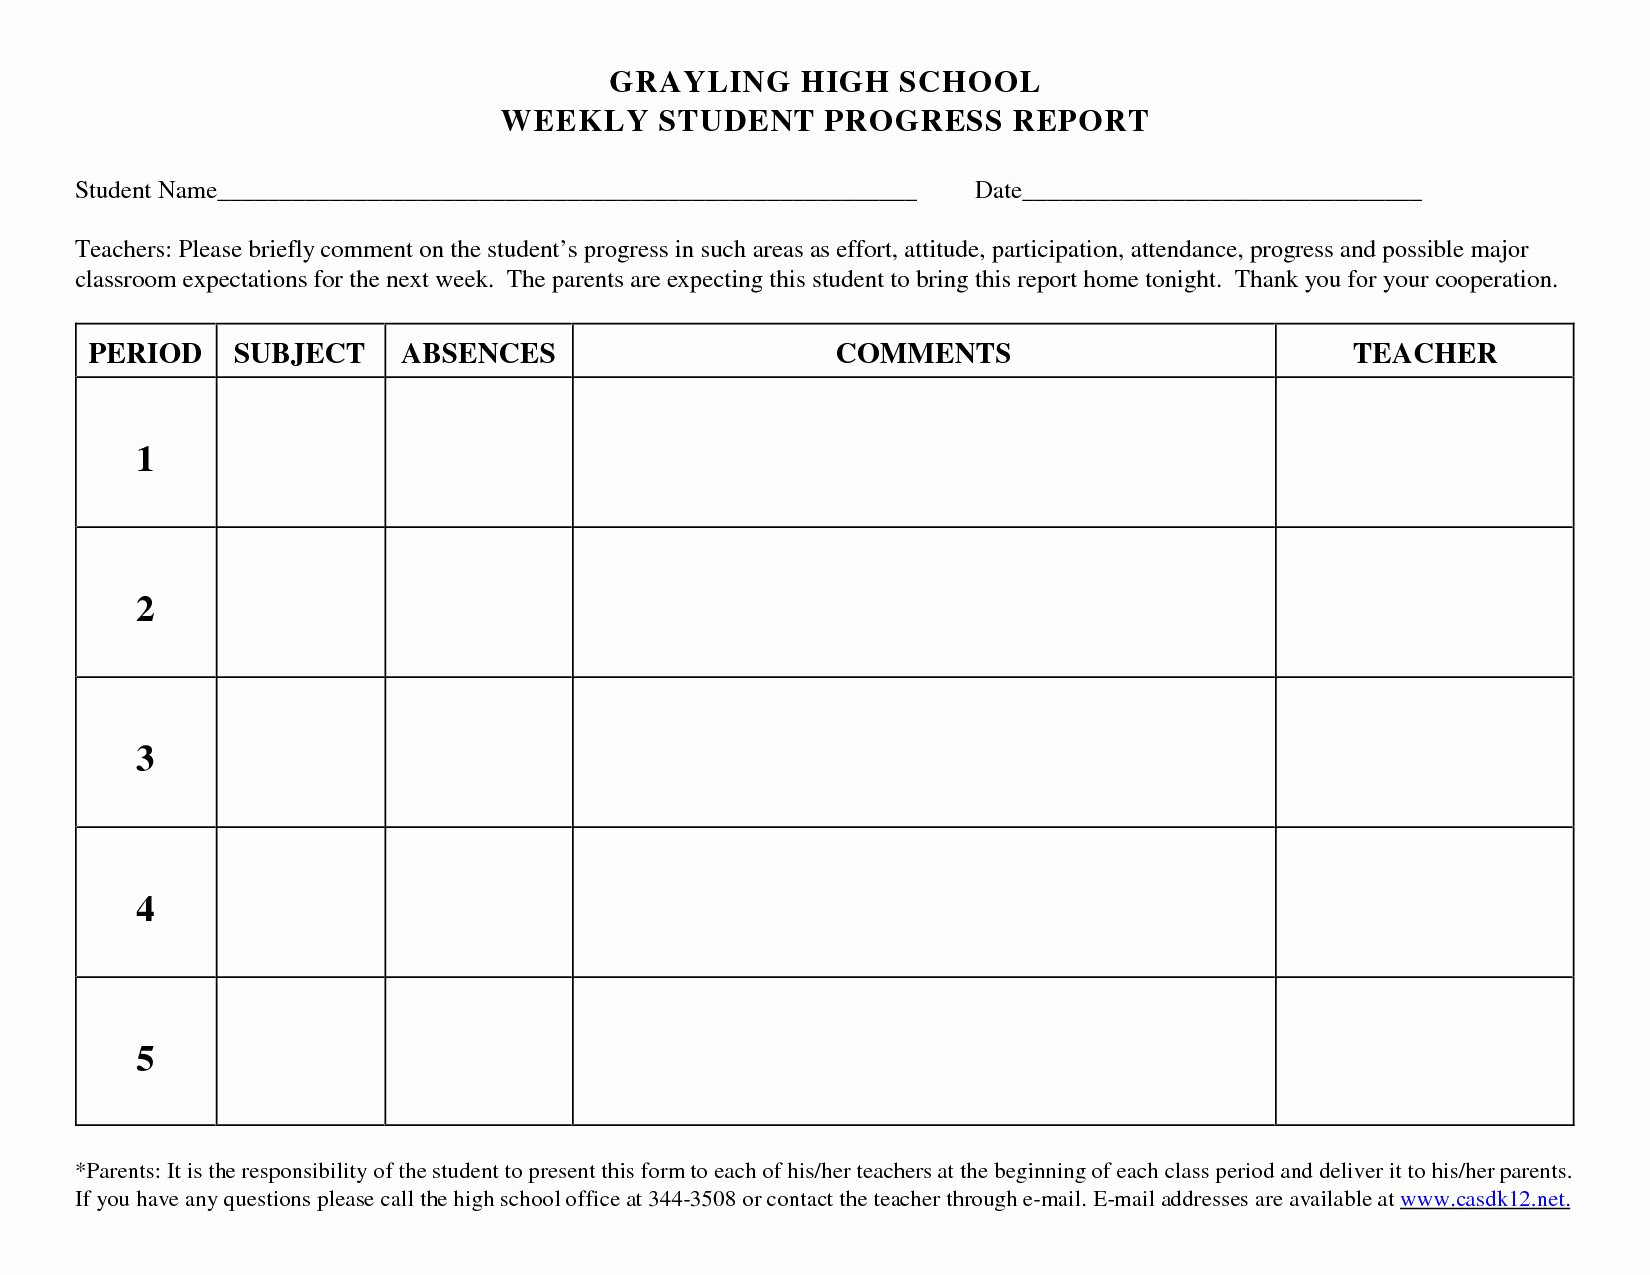 Student Progress Report Template Awesome Progress Report Template for High School Students Google